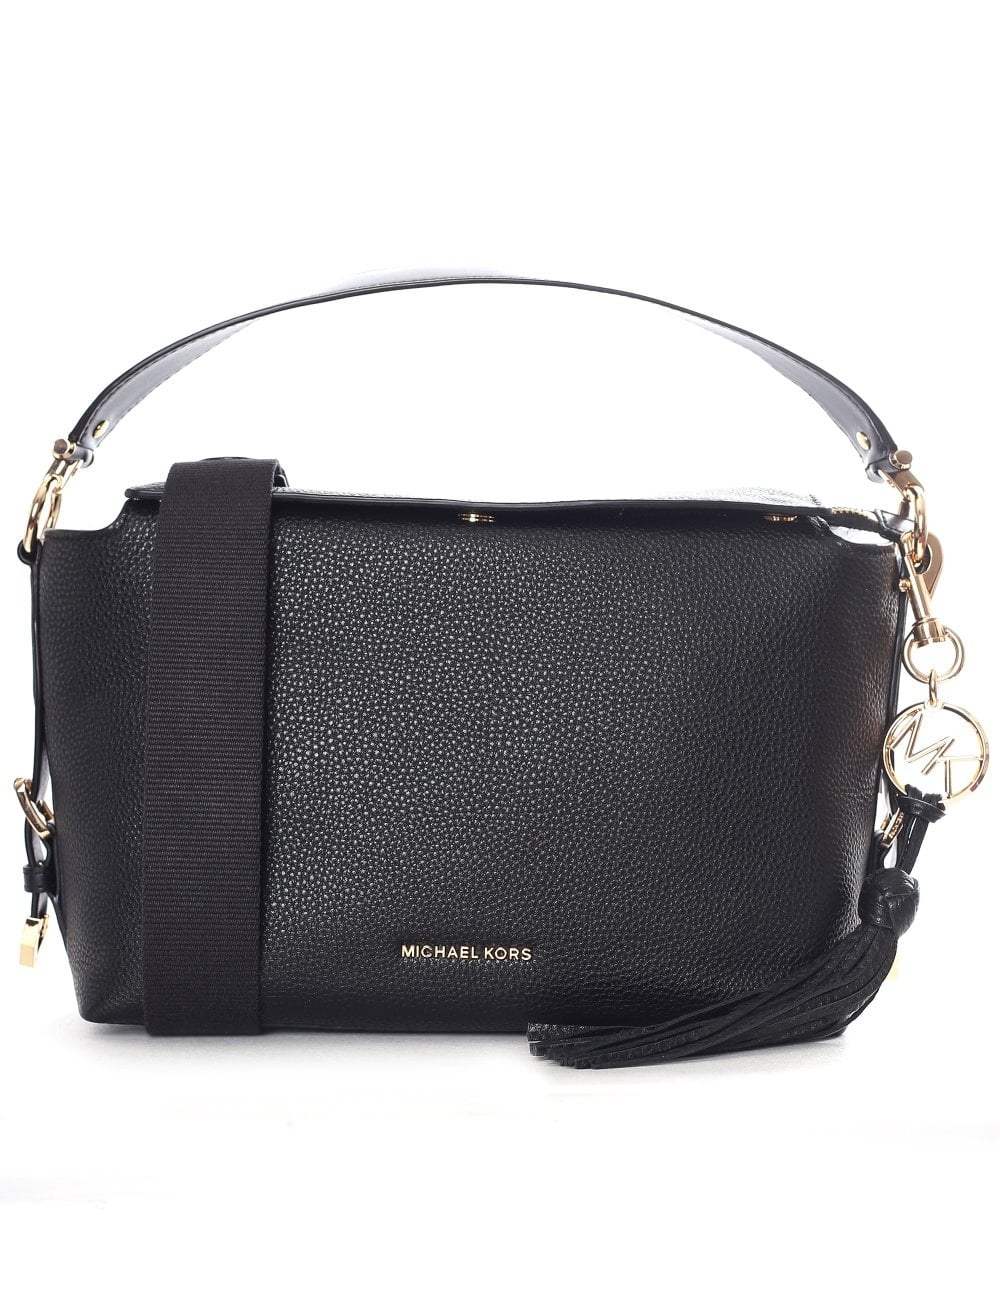 50aaa4d2082f Michael Kors Women's Brooke Medium Satchel Black